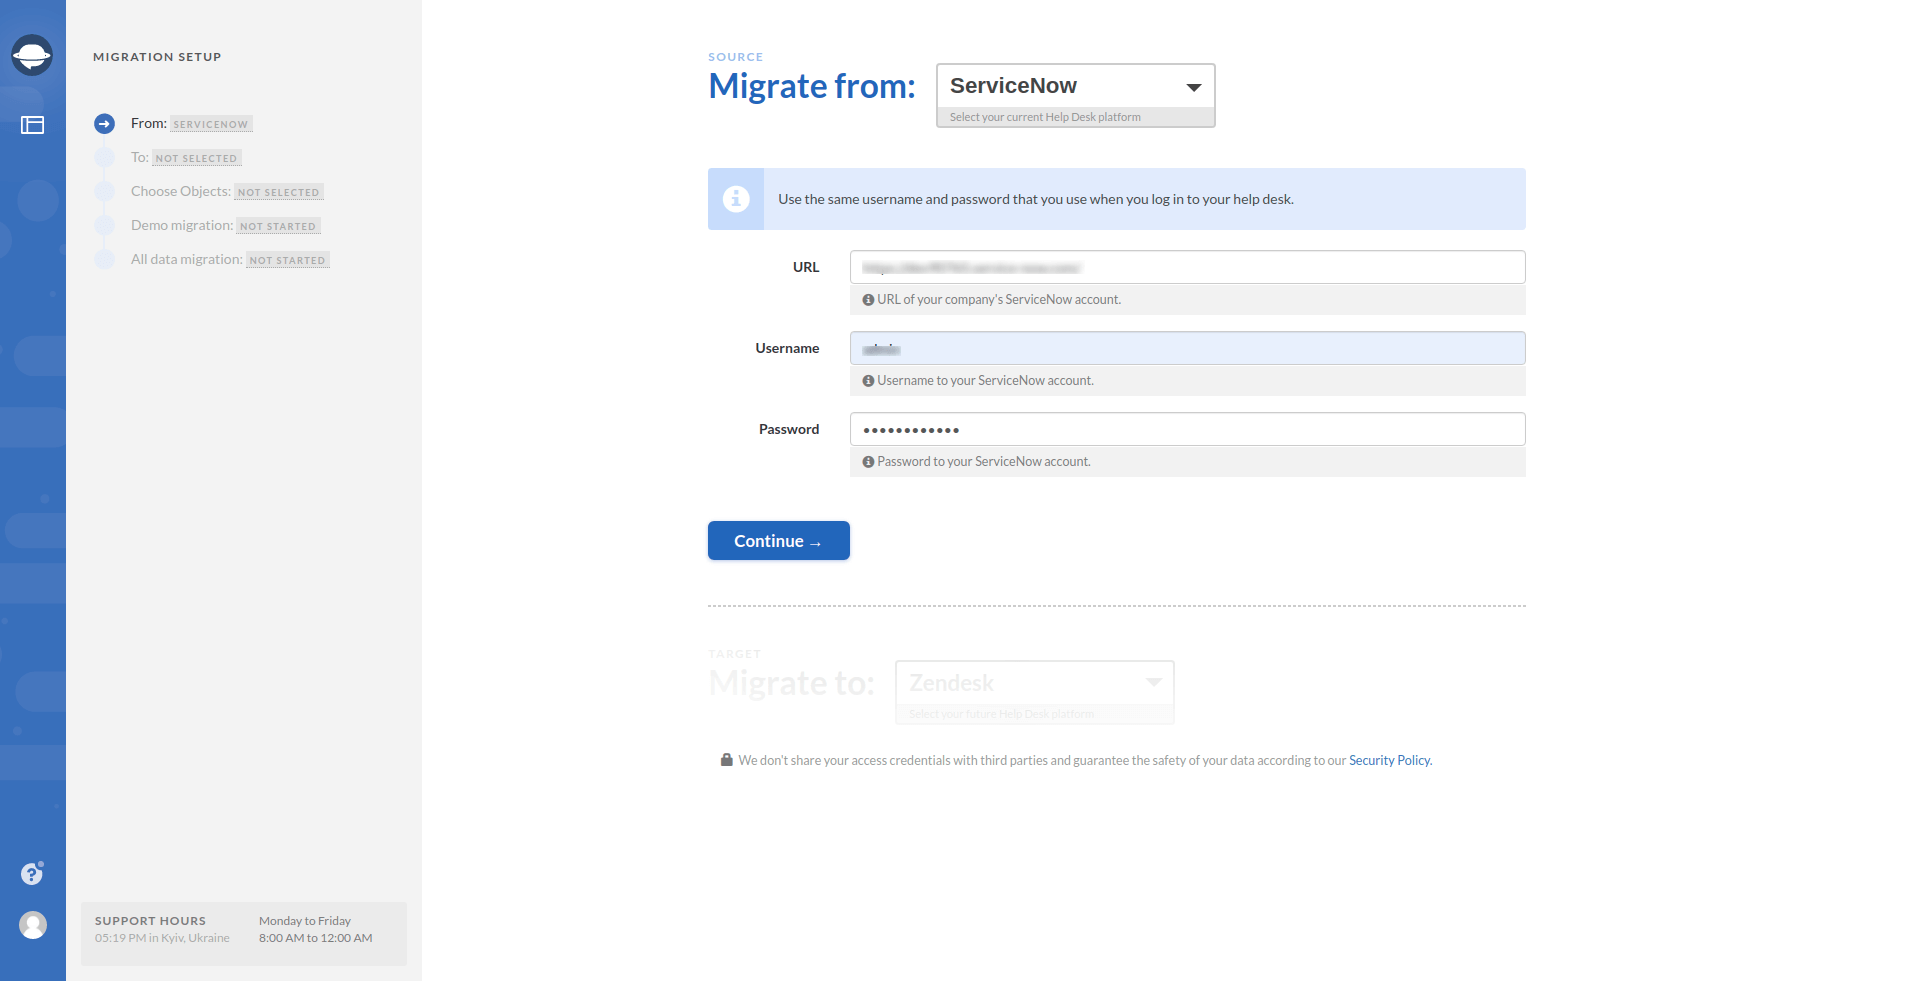 ServiceNow as migration source